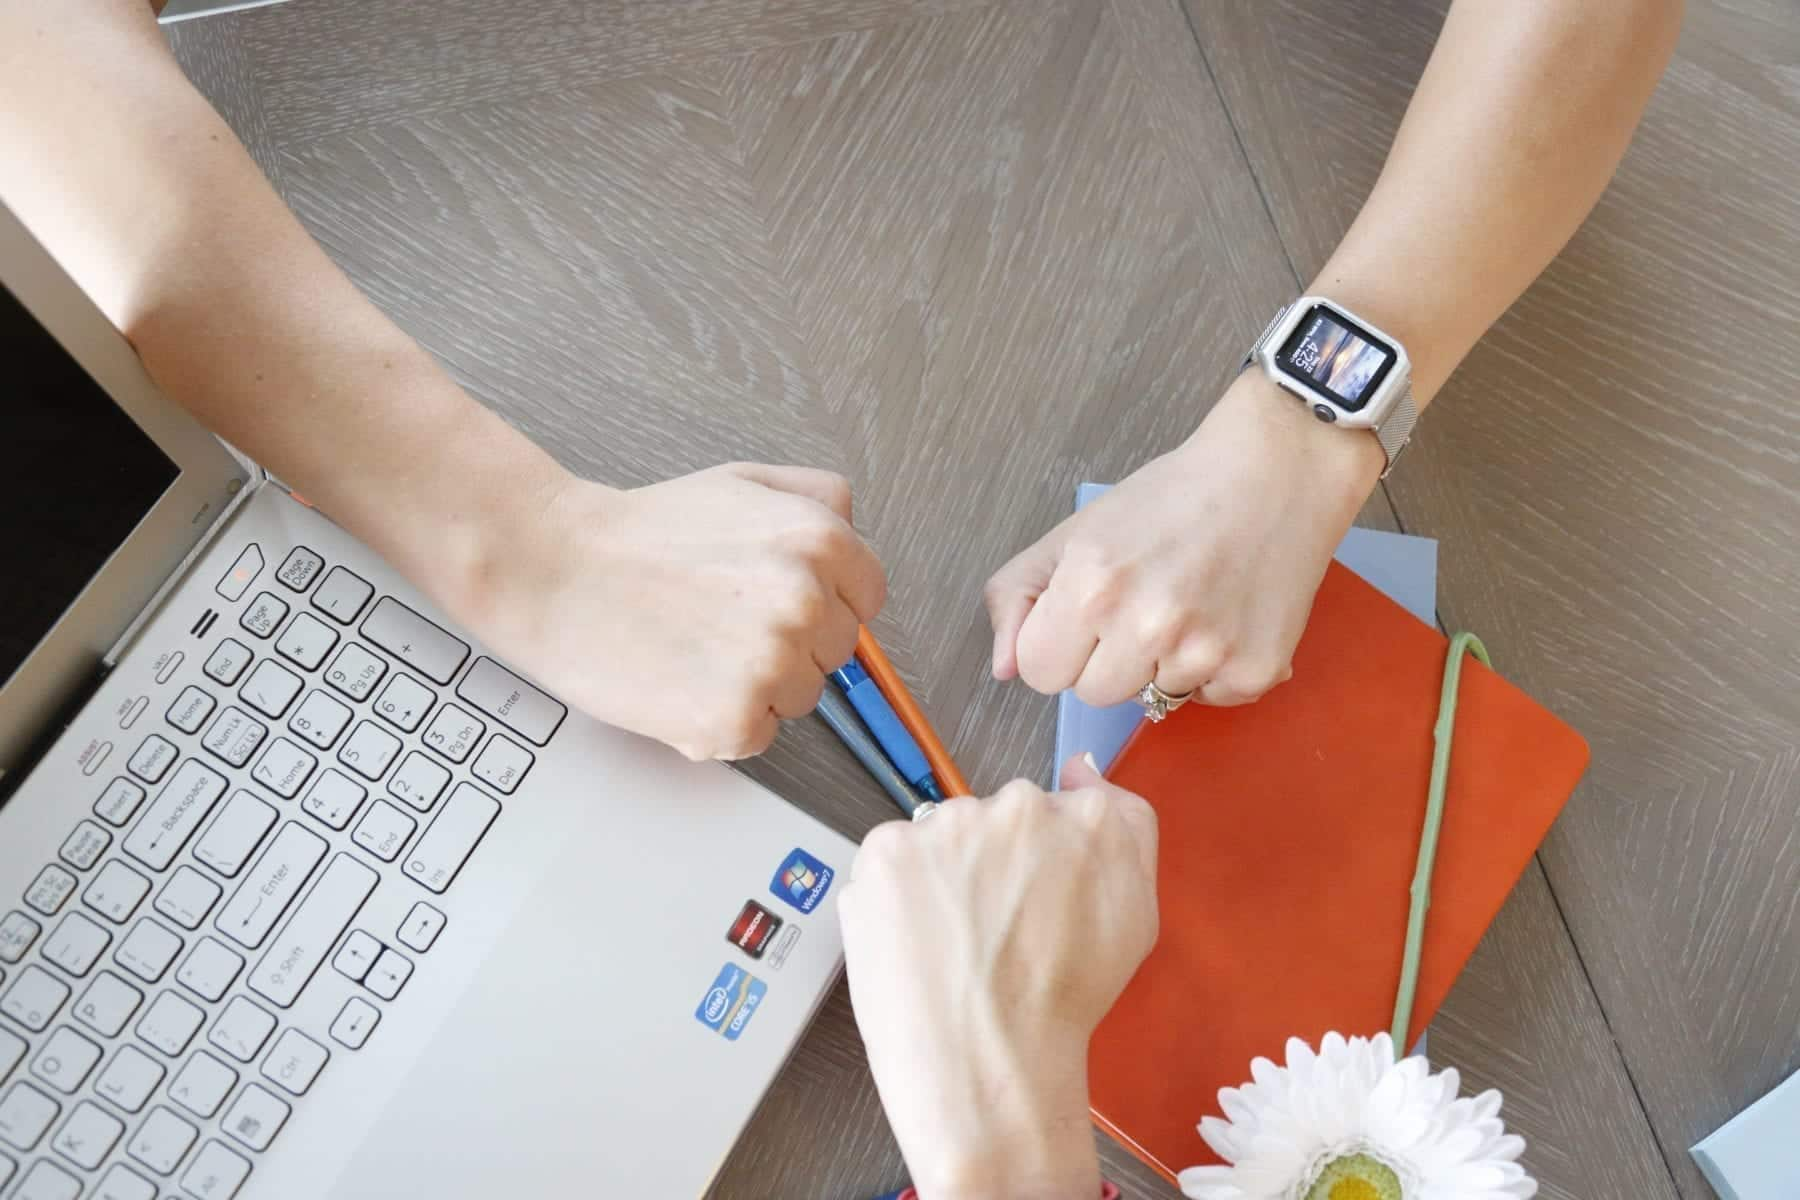 3 women fist bumping over computer and desk celebrating a Facebook marketing win